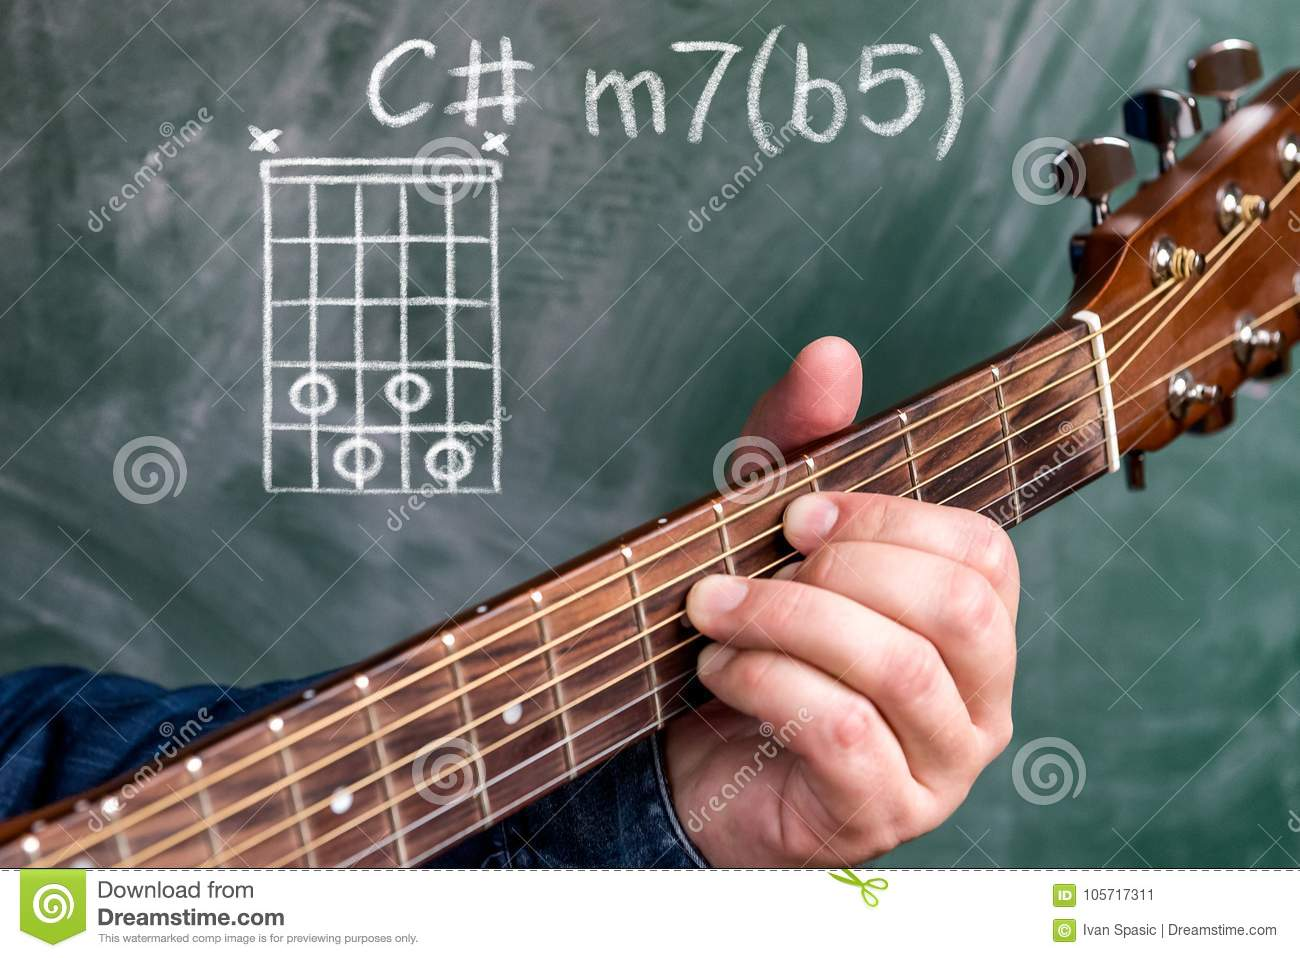 Man Playing Guitar Chords Displayed On A Blackboard Chord C Minor